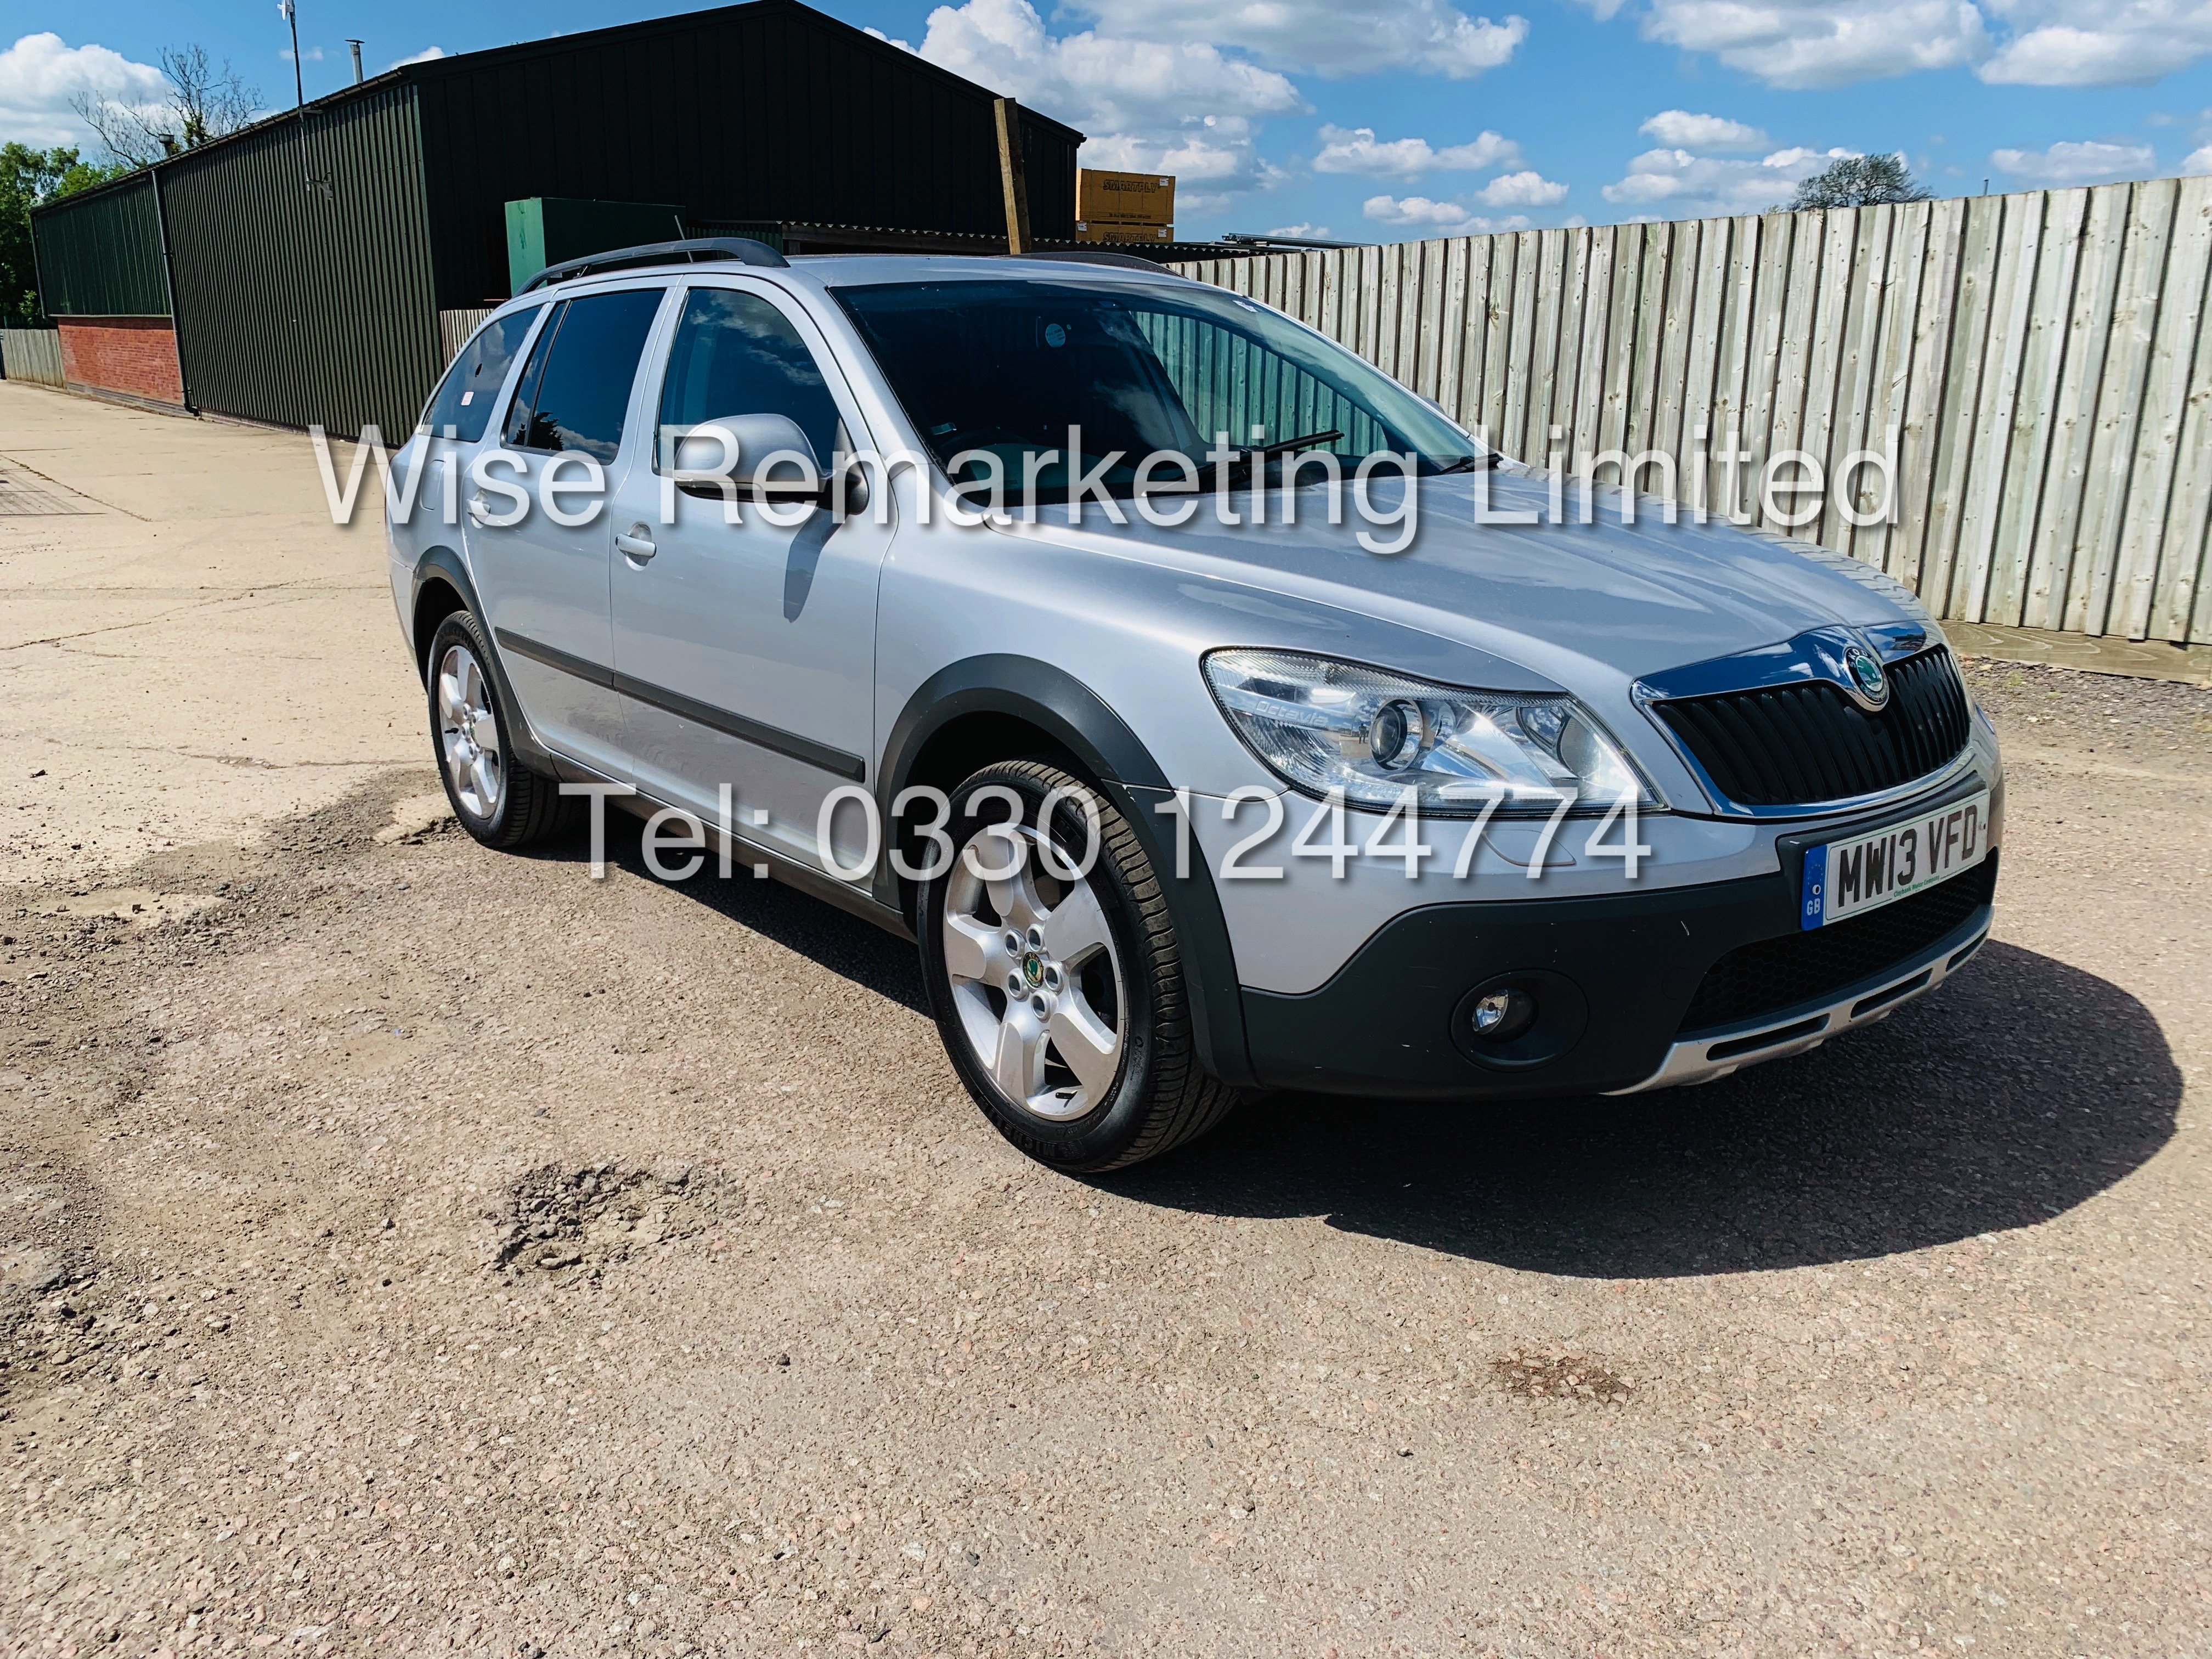 SKODA OCTAVIA (SCOUT) 2.0tdi DSG AUTOMATIC ESTATE / 2013 / 1 OWNER WITH FULL HISTORY / 140BHP / 4x4 - Image 7 of 14